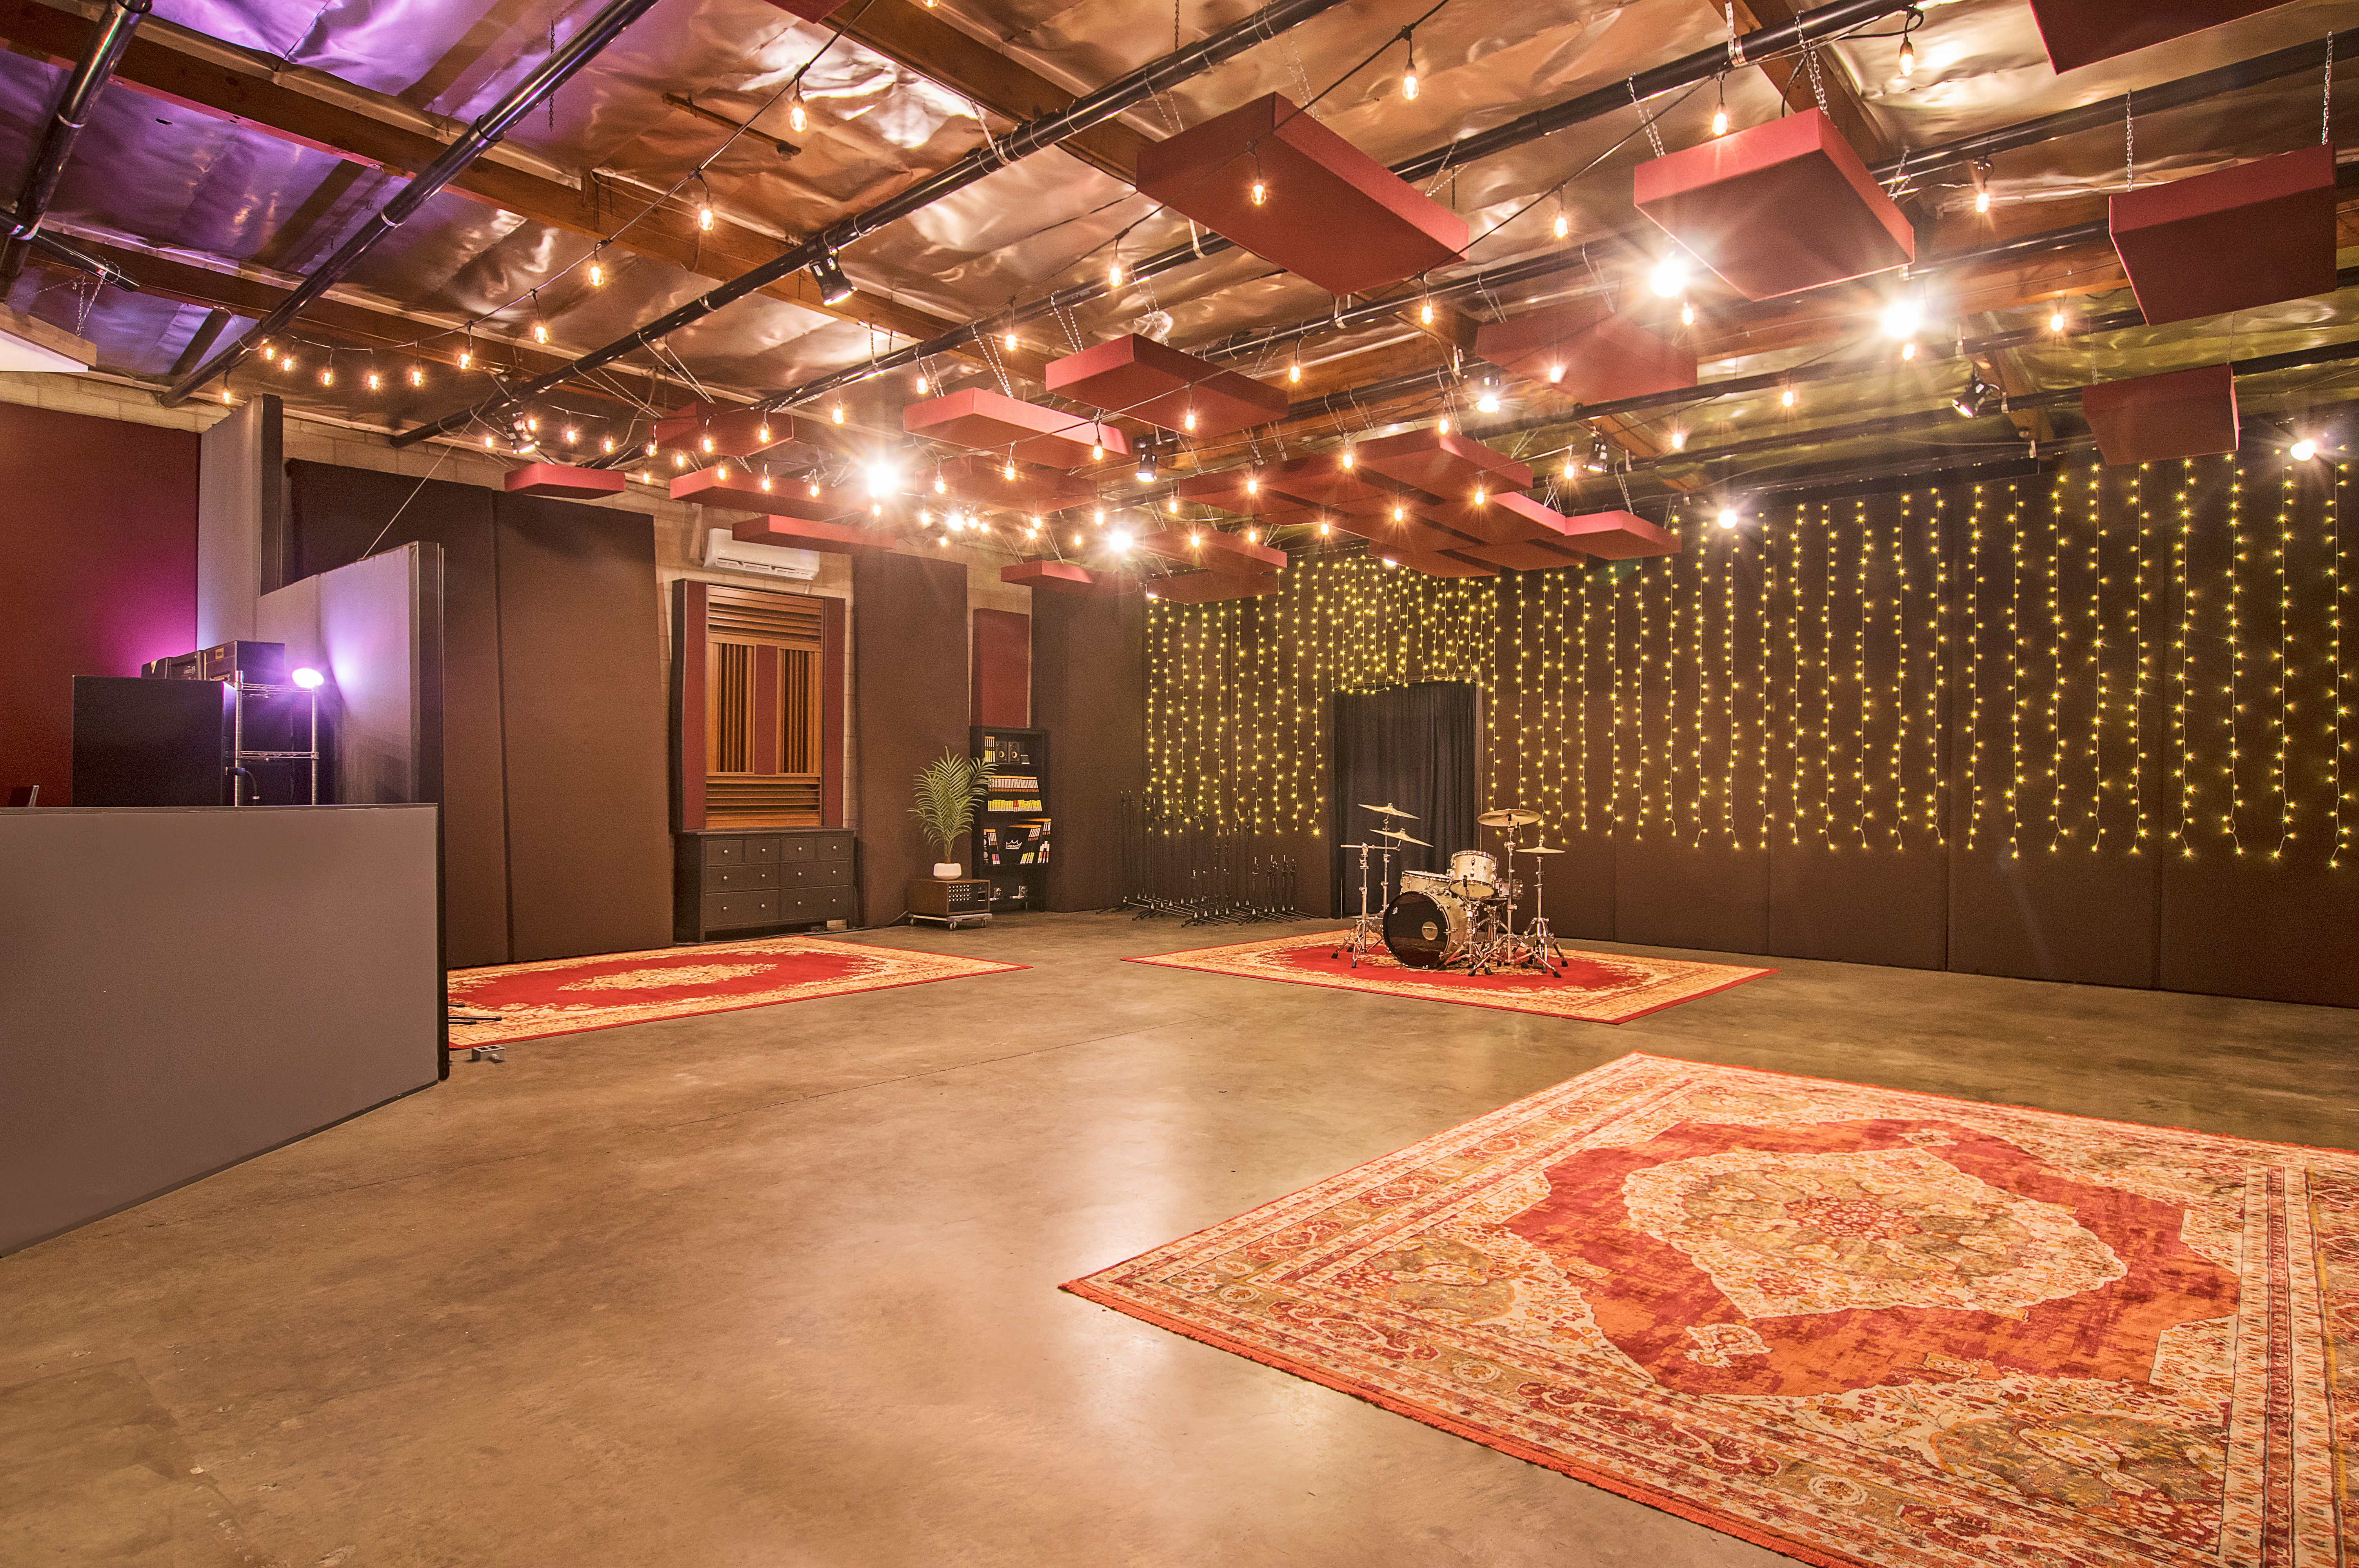 Updated Pics Of In Flight Music Studios! We're Finally Finished!